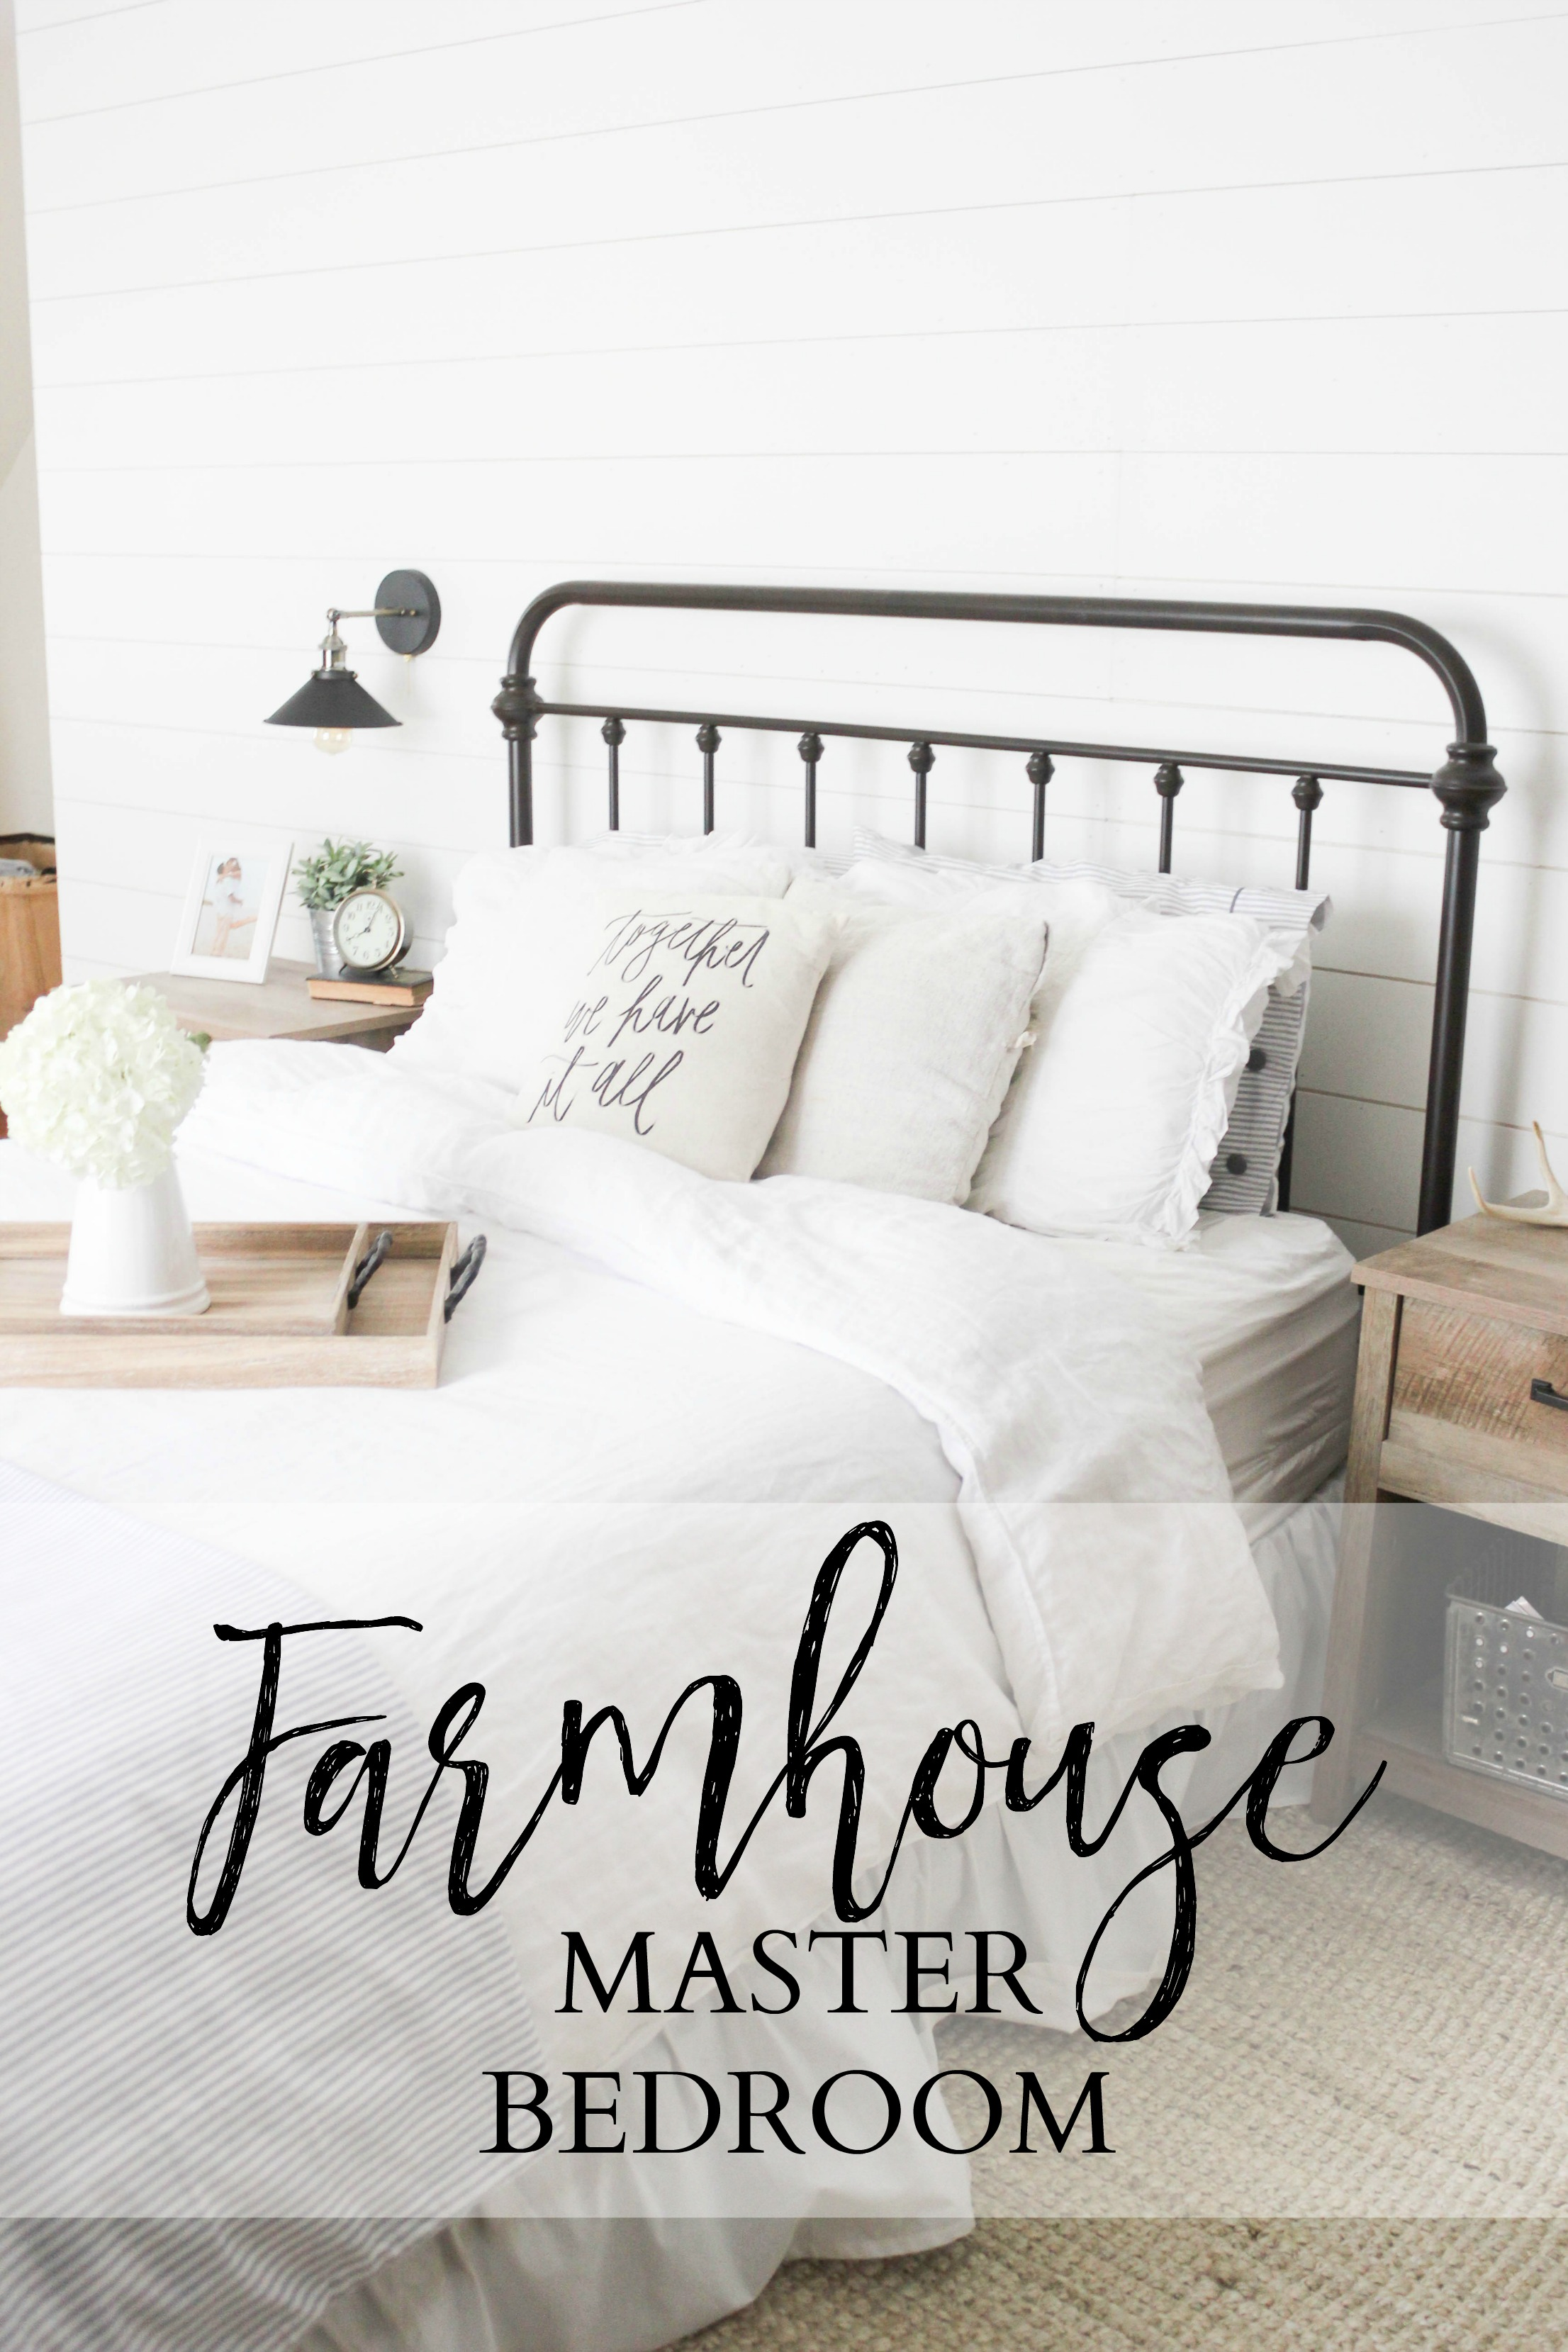 Farmhouse Bedroom 25Home   Farmhouse Master Bedroom   Lauren McBride. Farmhouse Bedroom. Home Design Ideas